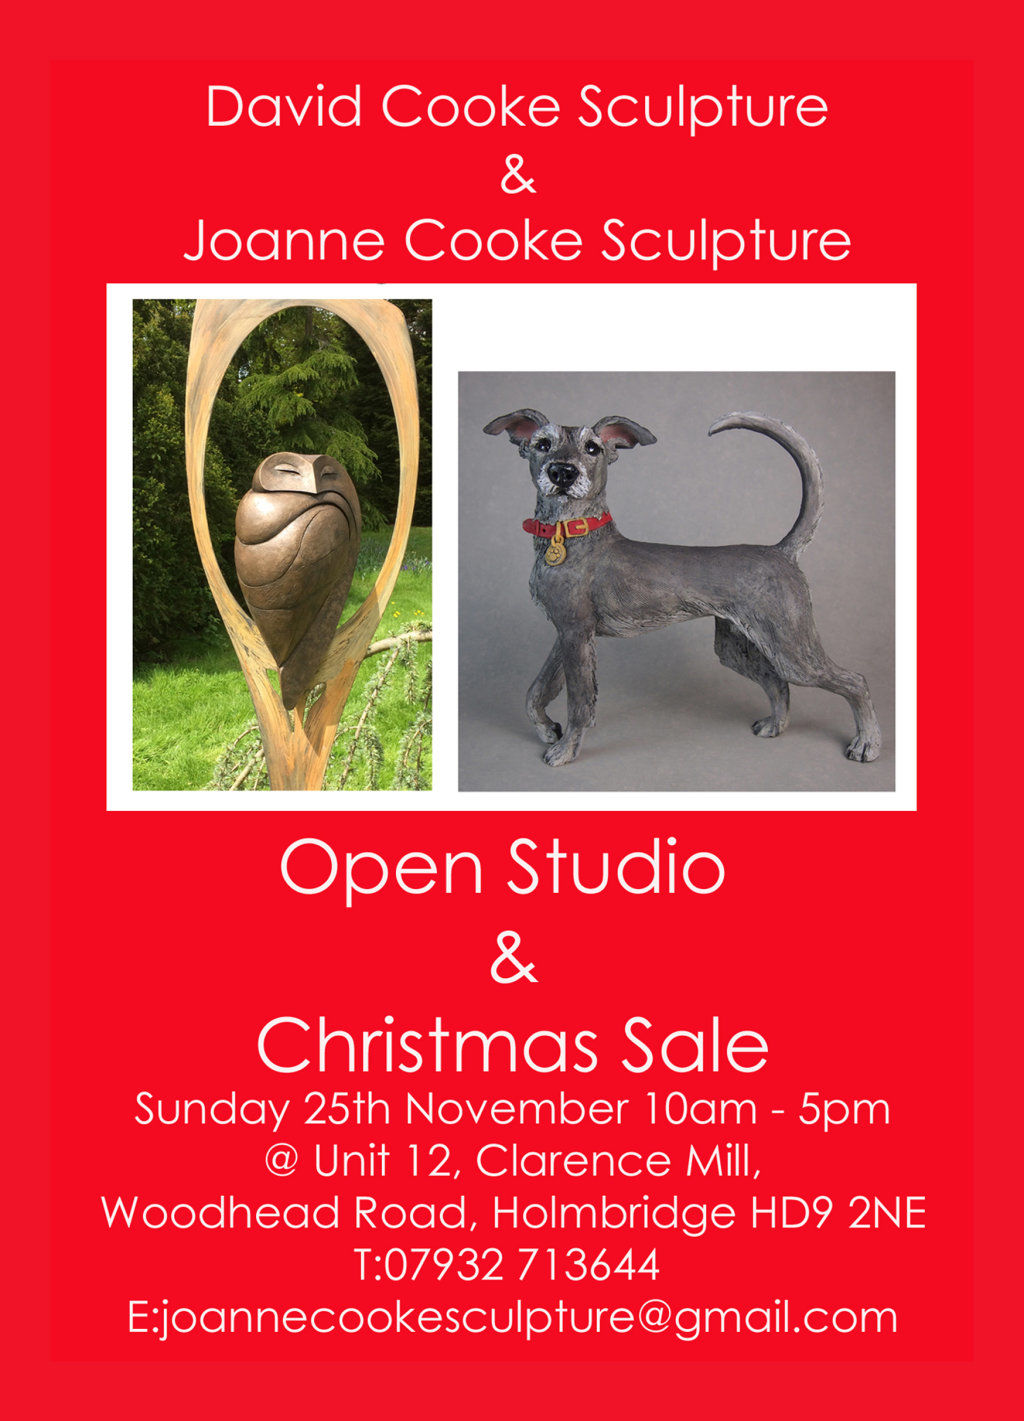 Open Studio & Christmas Sale